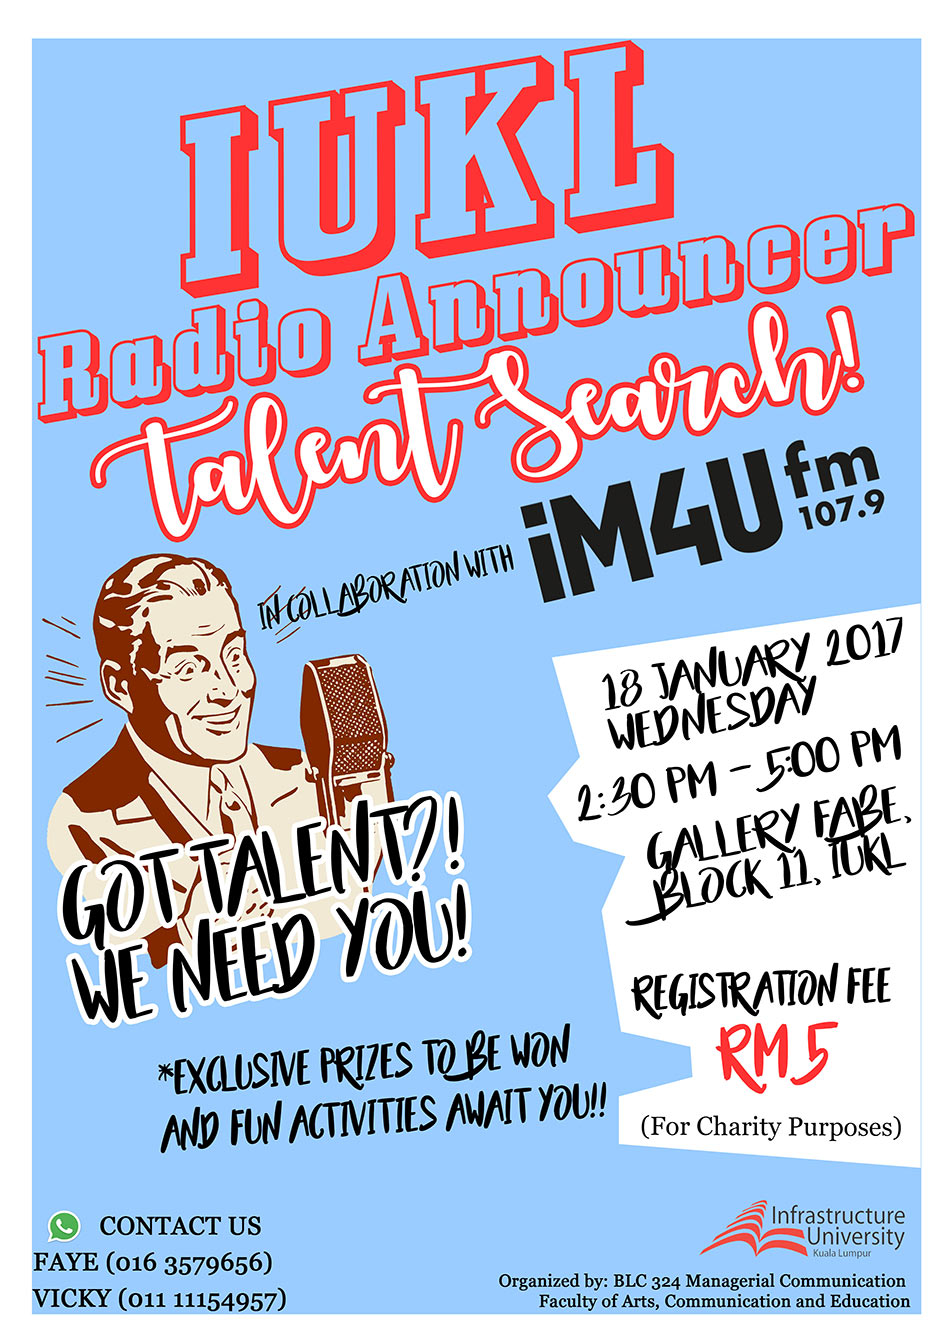 IUKL Radio Announcer Talent Search!